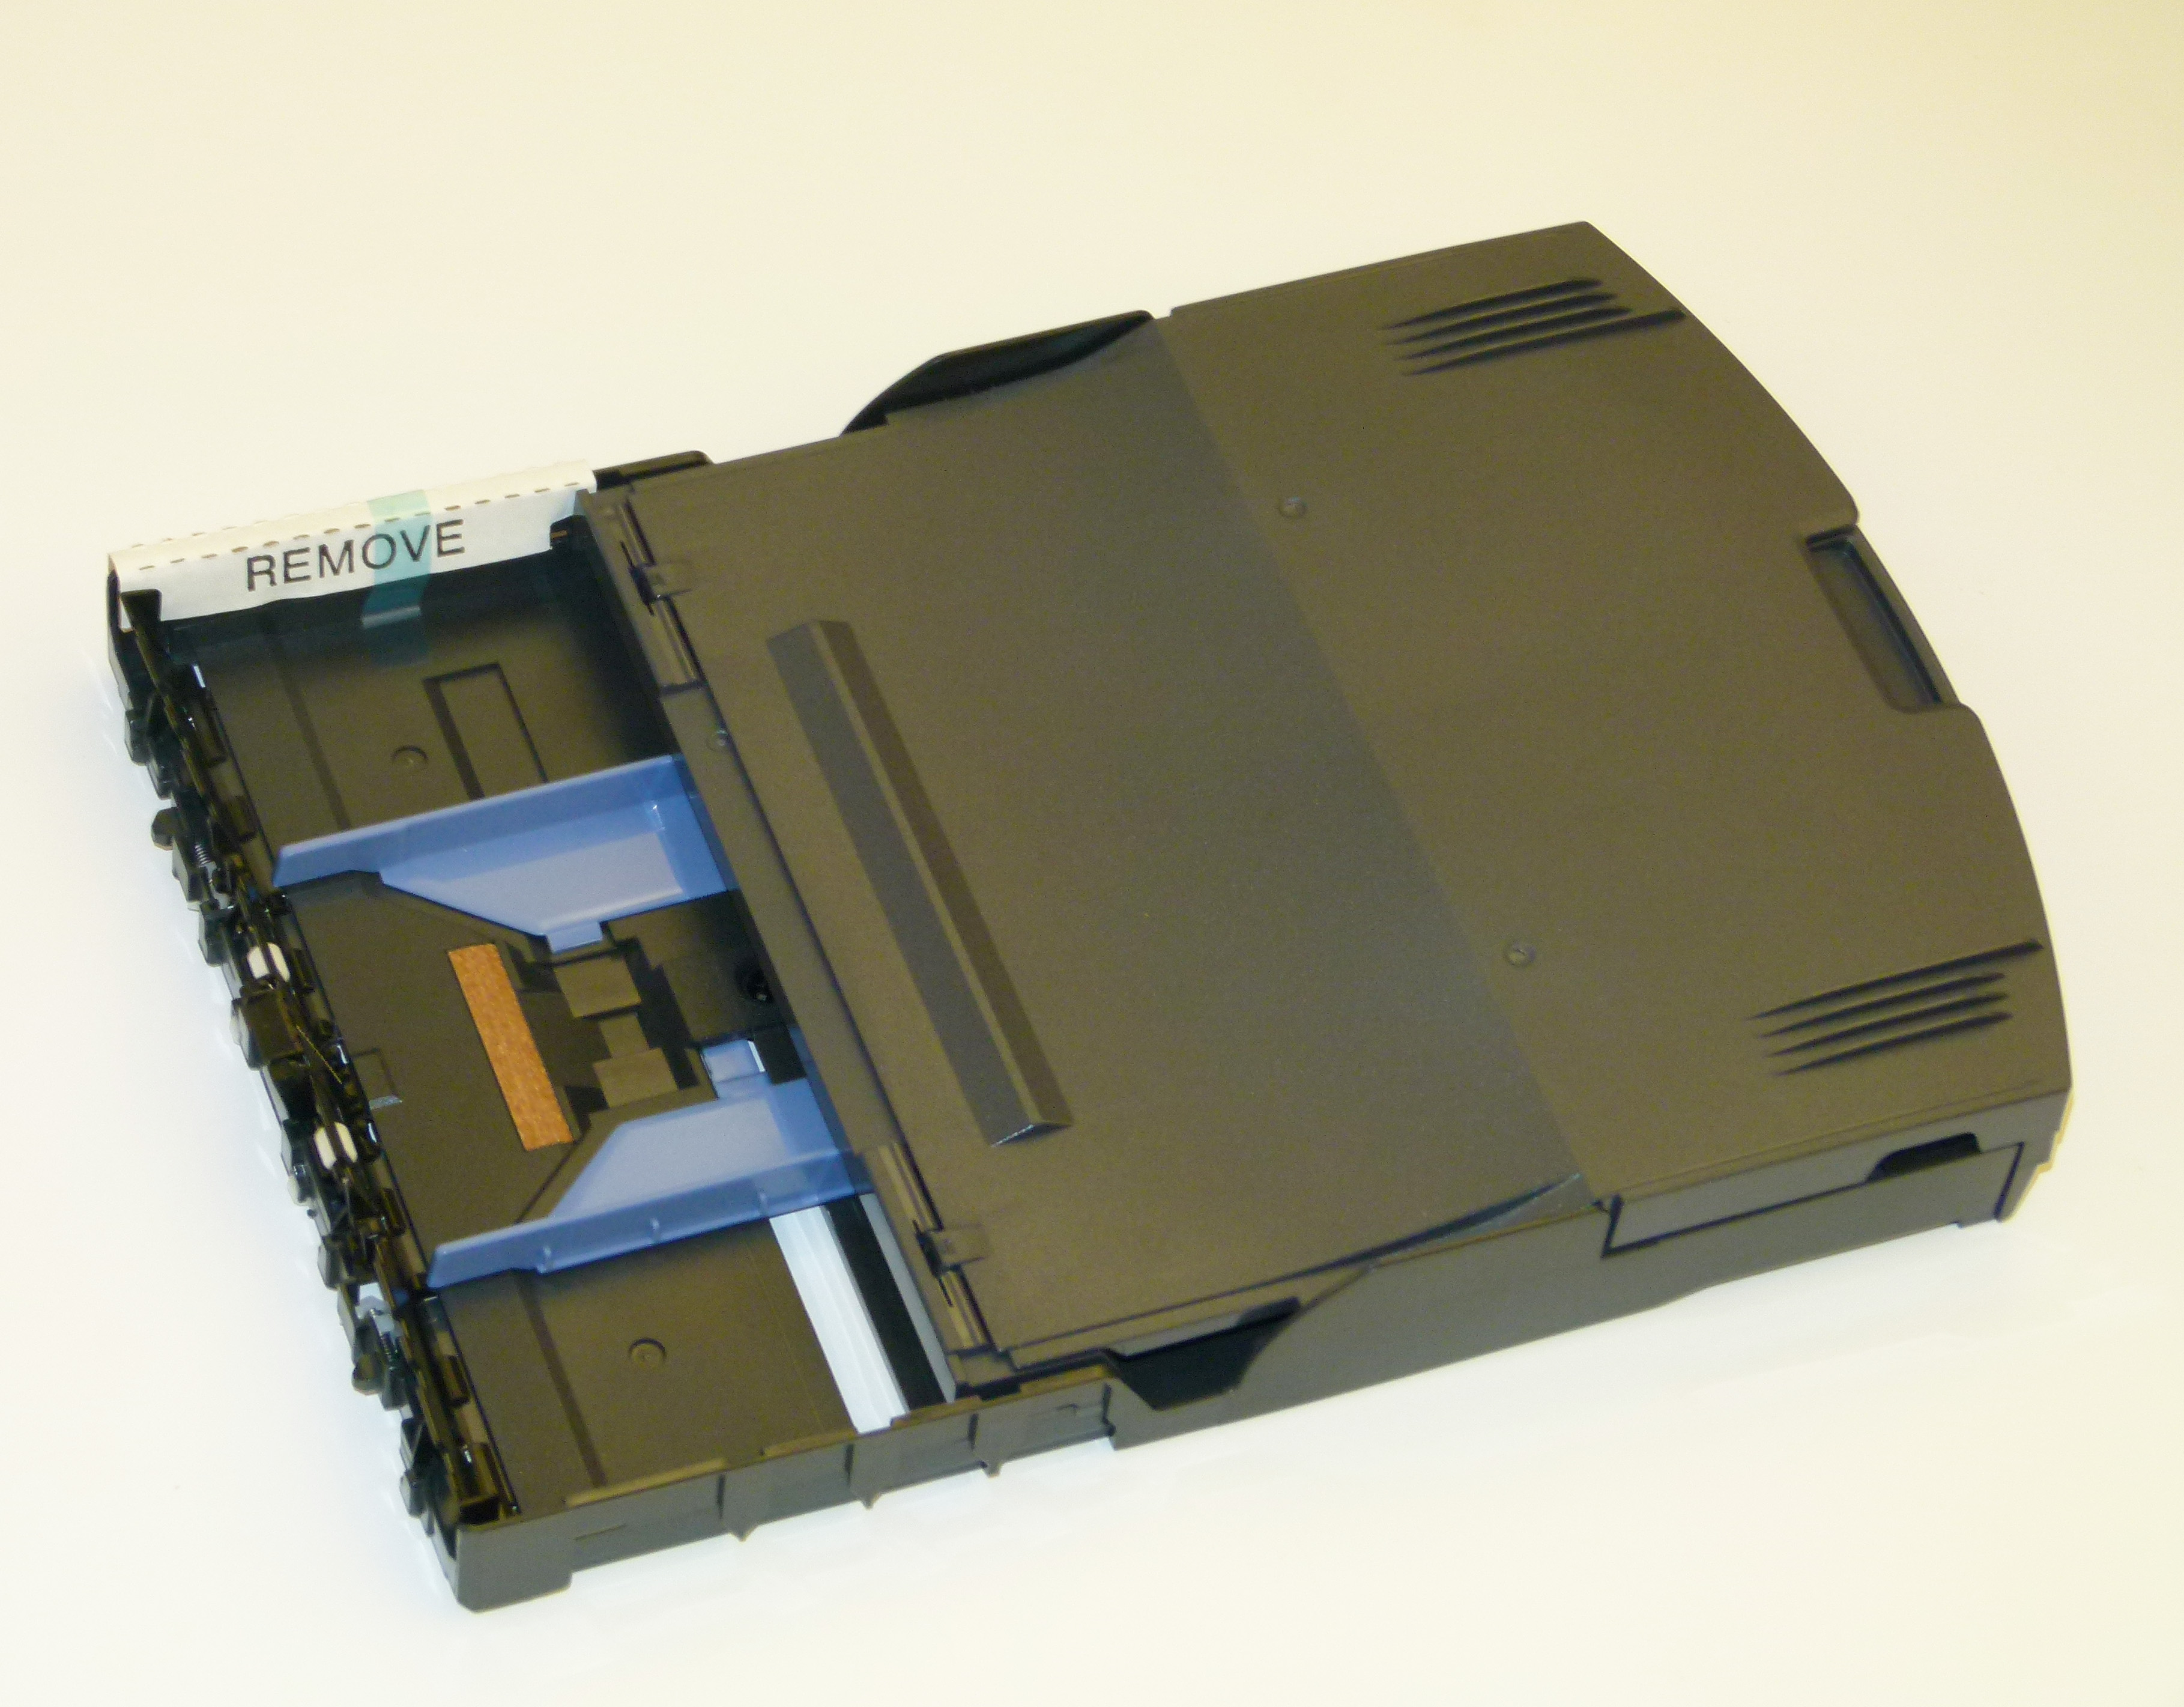 NEW GENUINE Brother Legal Size Paper Tray LT-27LG HL-2700 HL-2700CN MFC-9420CN